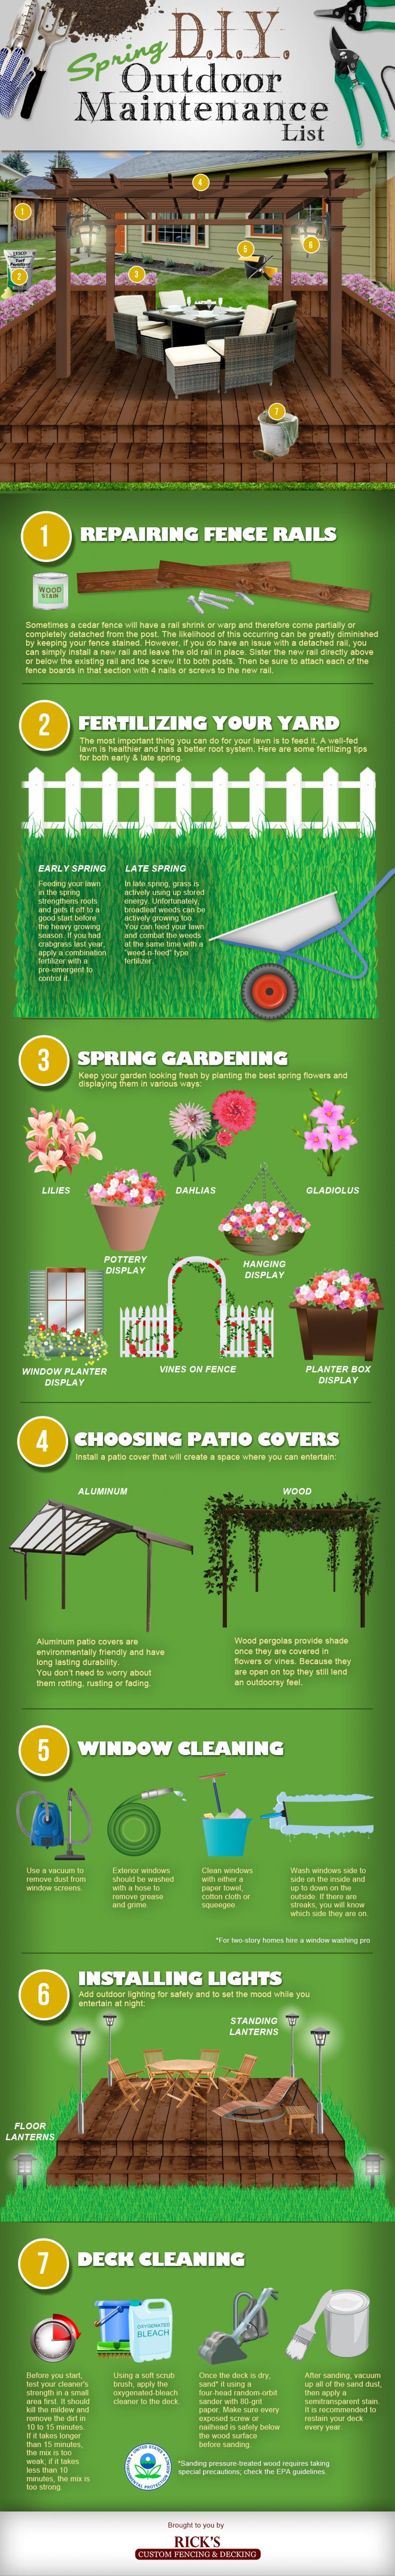 Spring DIY Outdoor Maintenance List Infographic